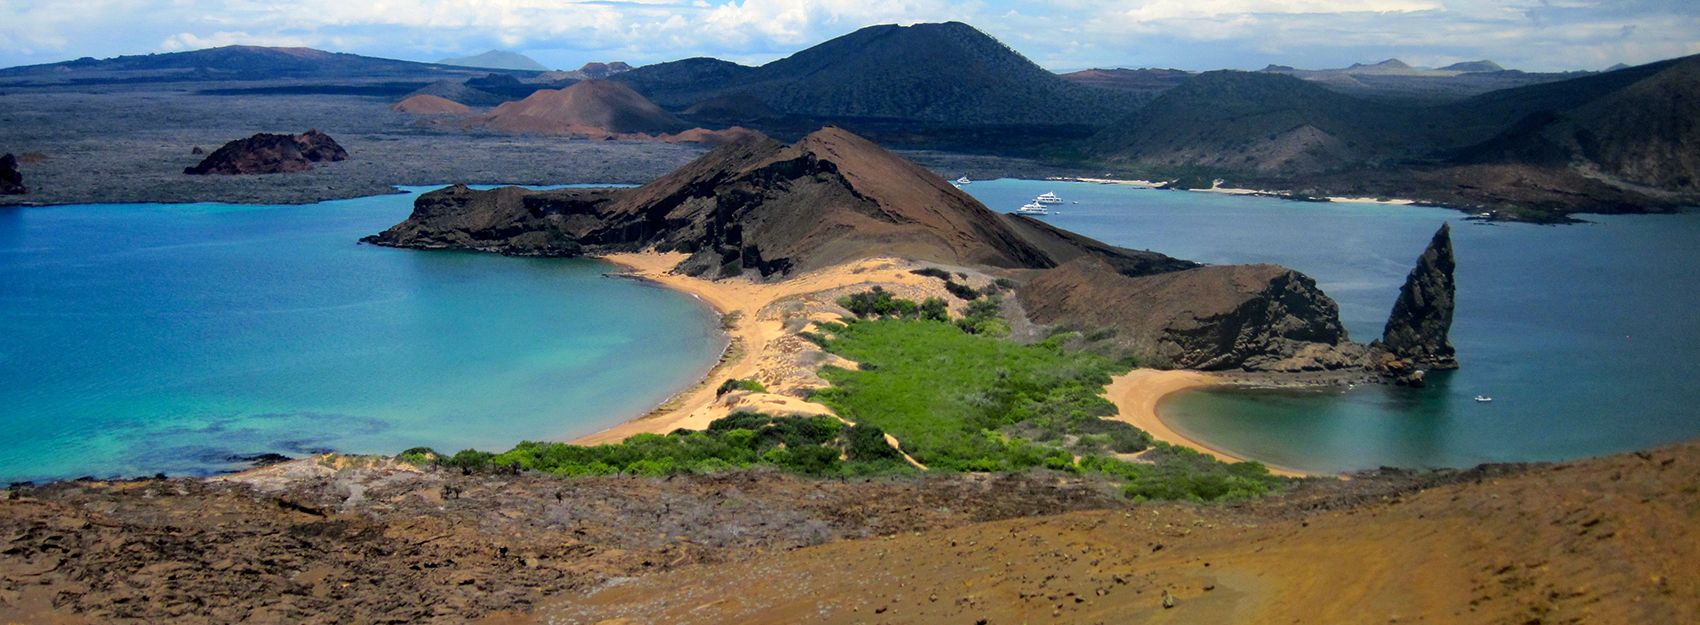 Galápagos Islands Study Abroad student photo of Bartolome Island